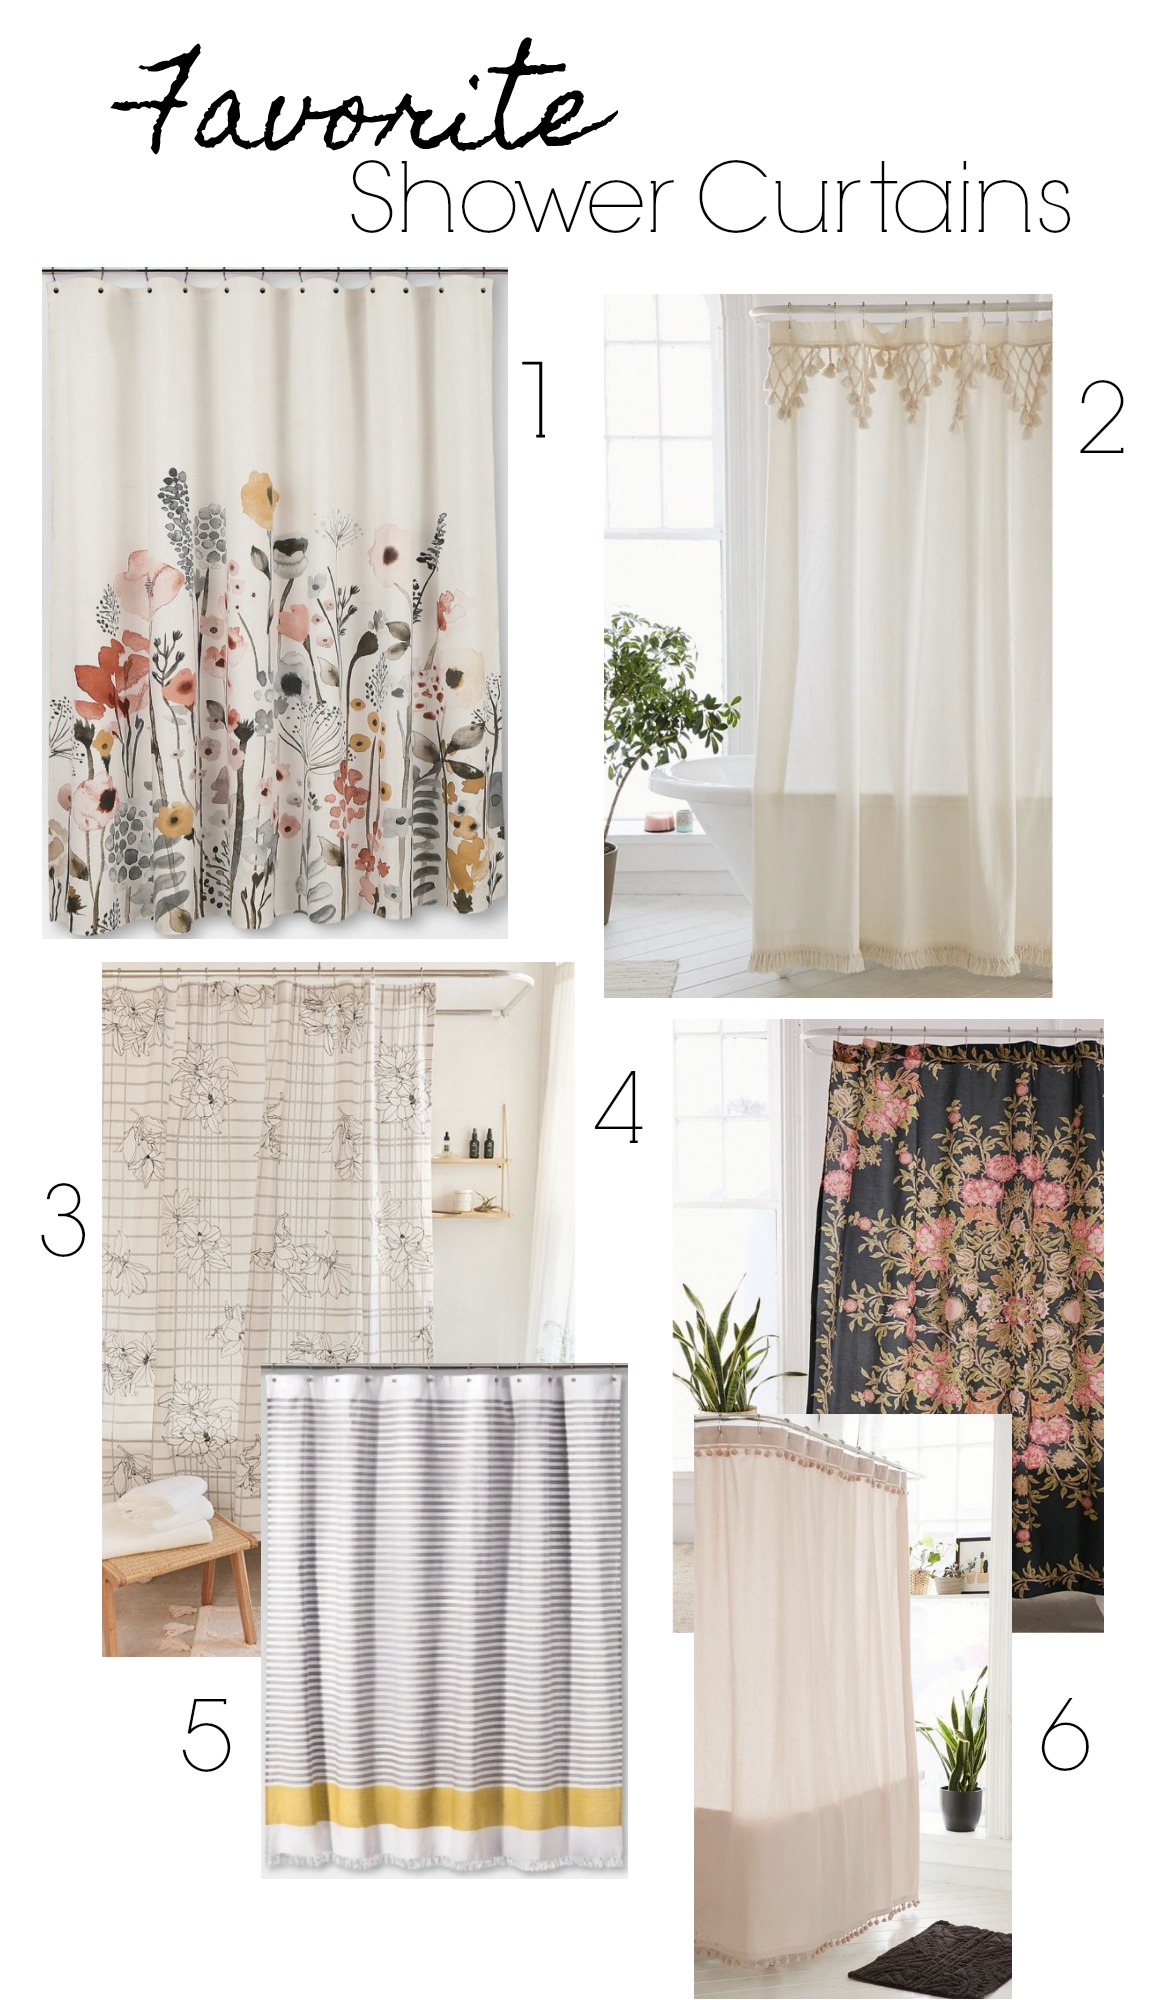 Favorite Shower Curtains- Affordable